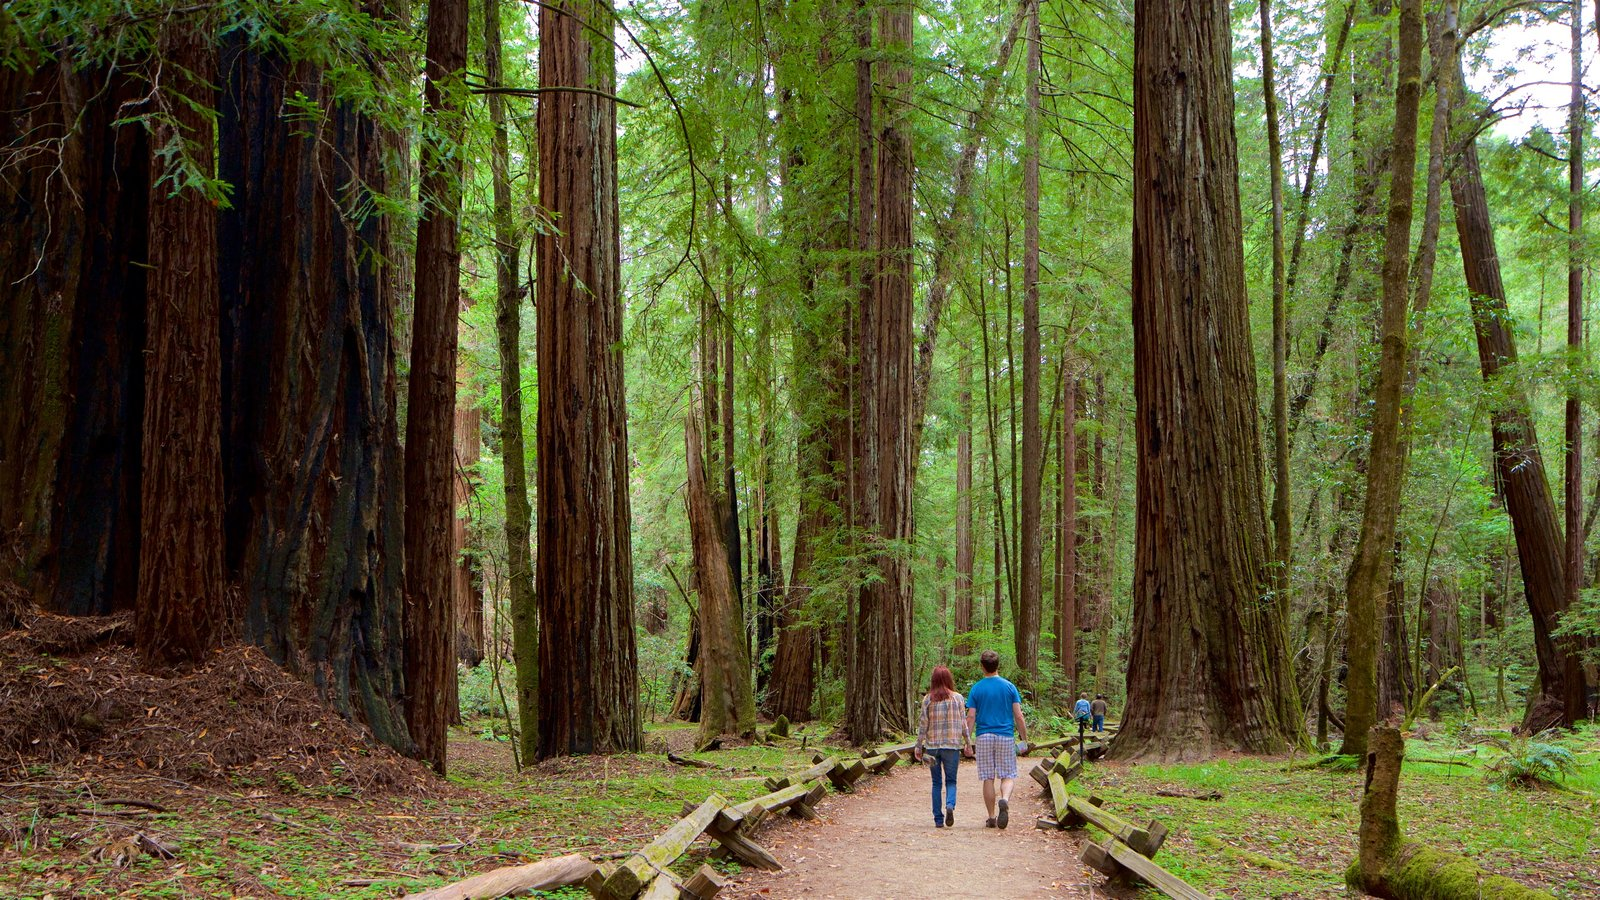 Armstrong Redwoods State Park showing forests as well as a couple